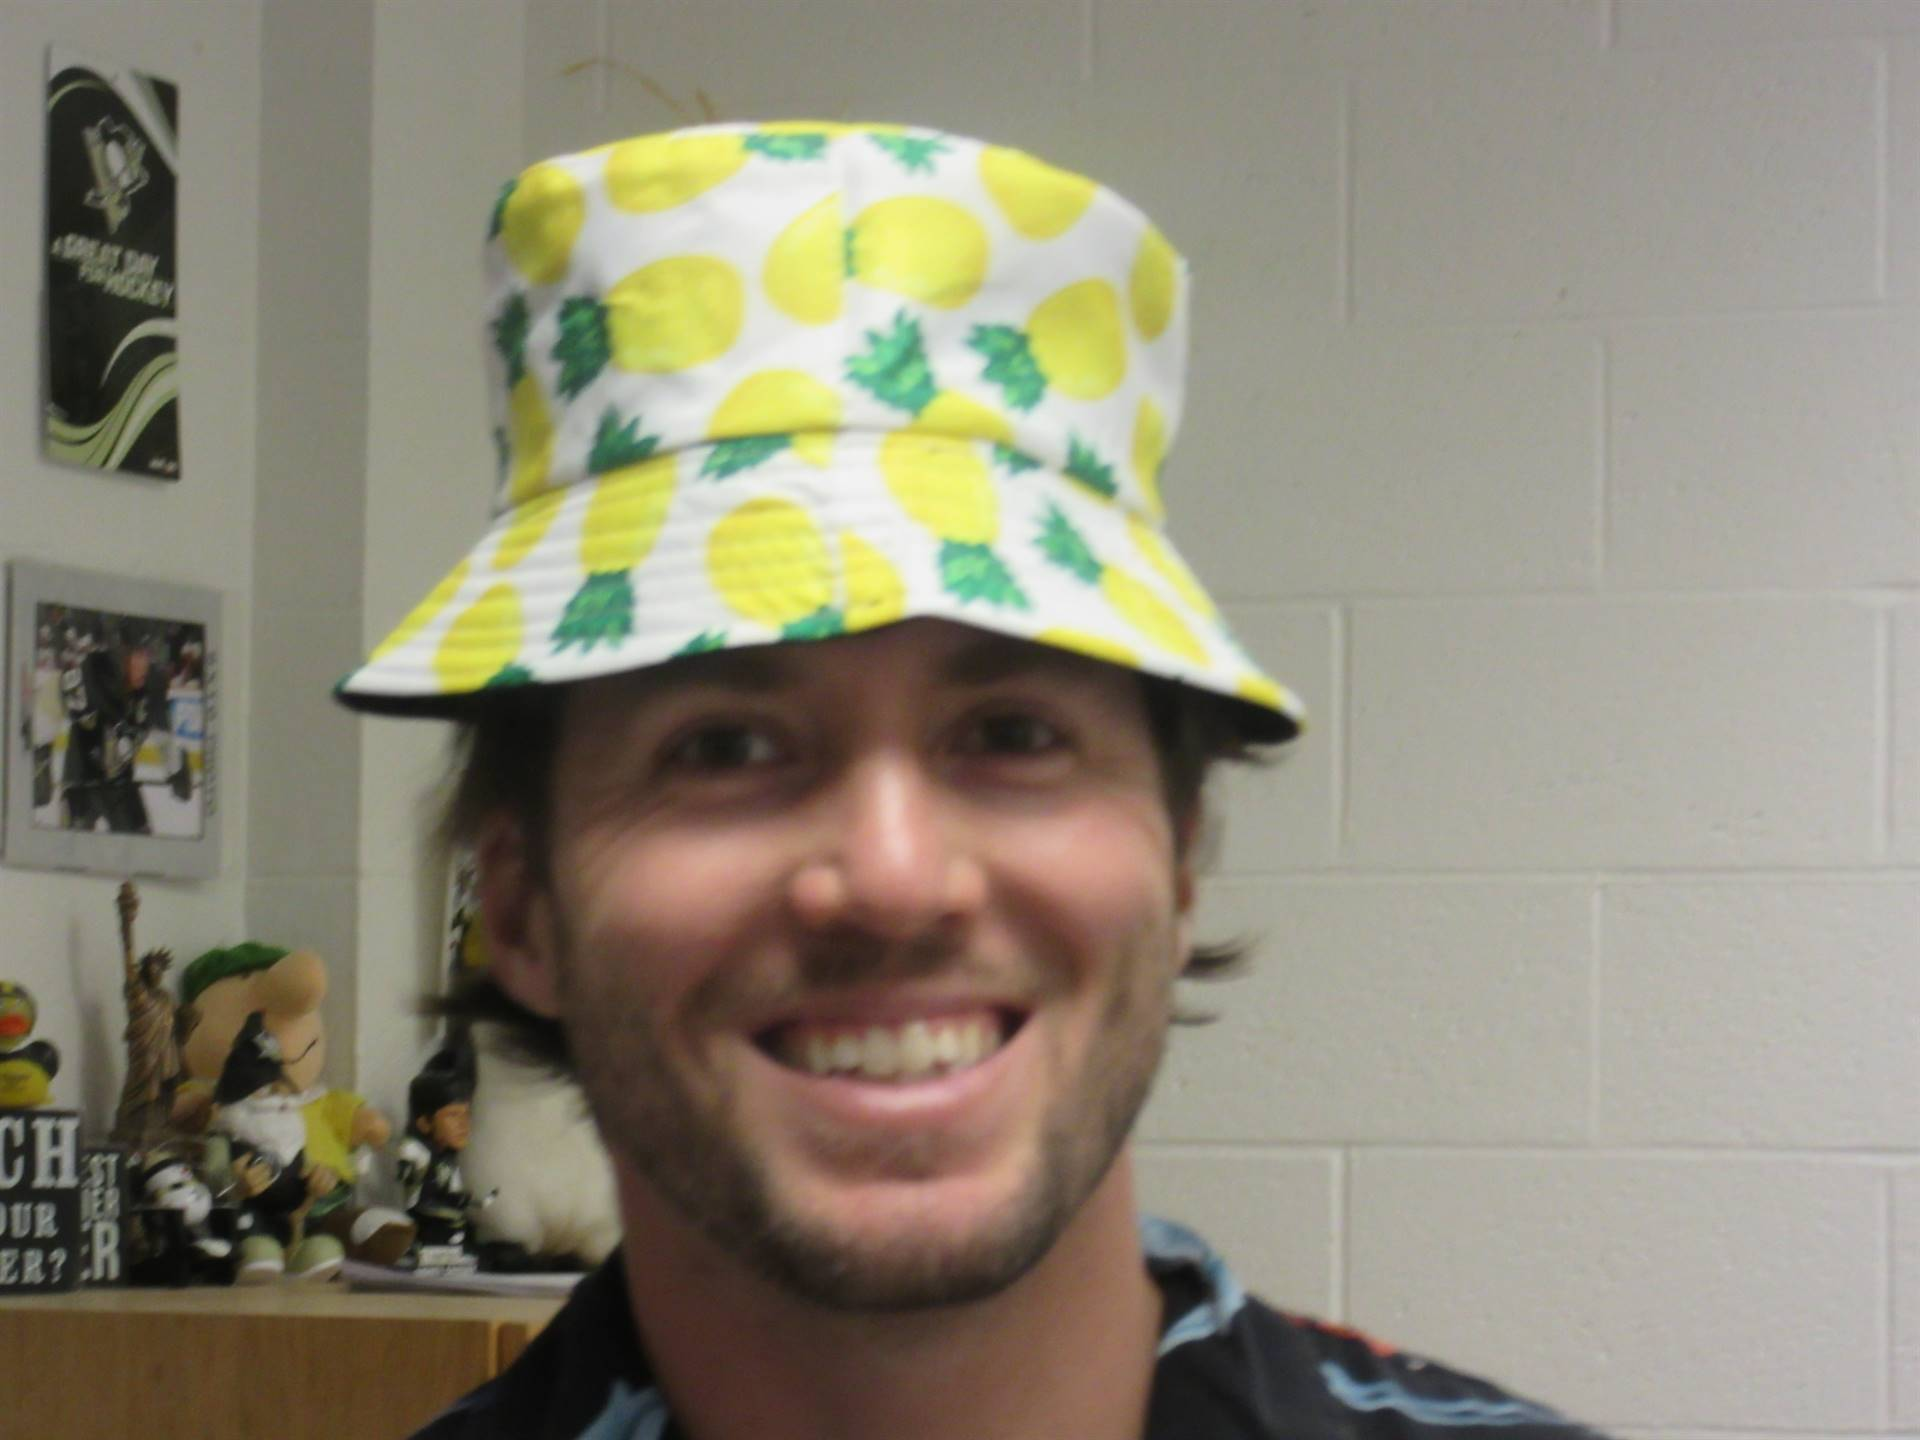 Teacher with pineapple hat